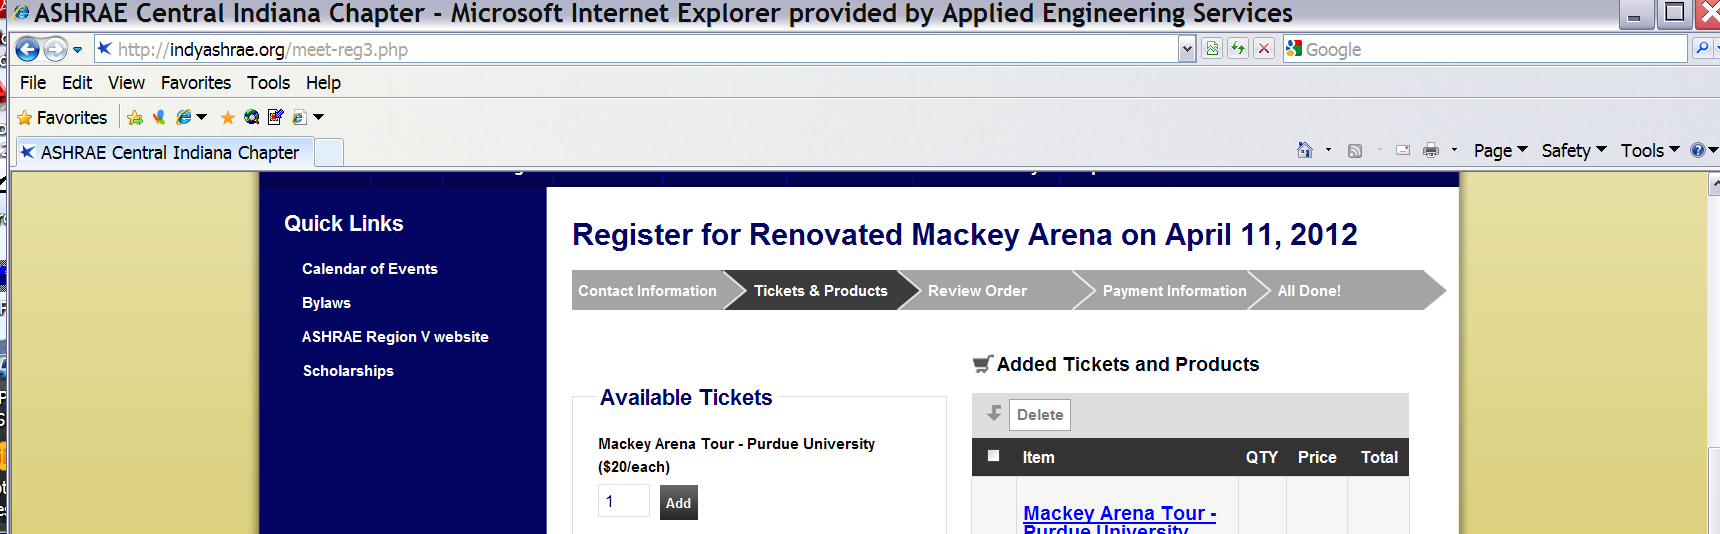 Click the Add button on the confirmation window to confirm the number of attendees.